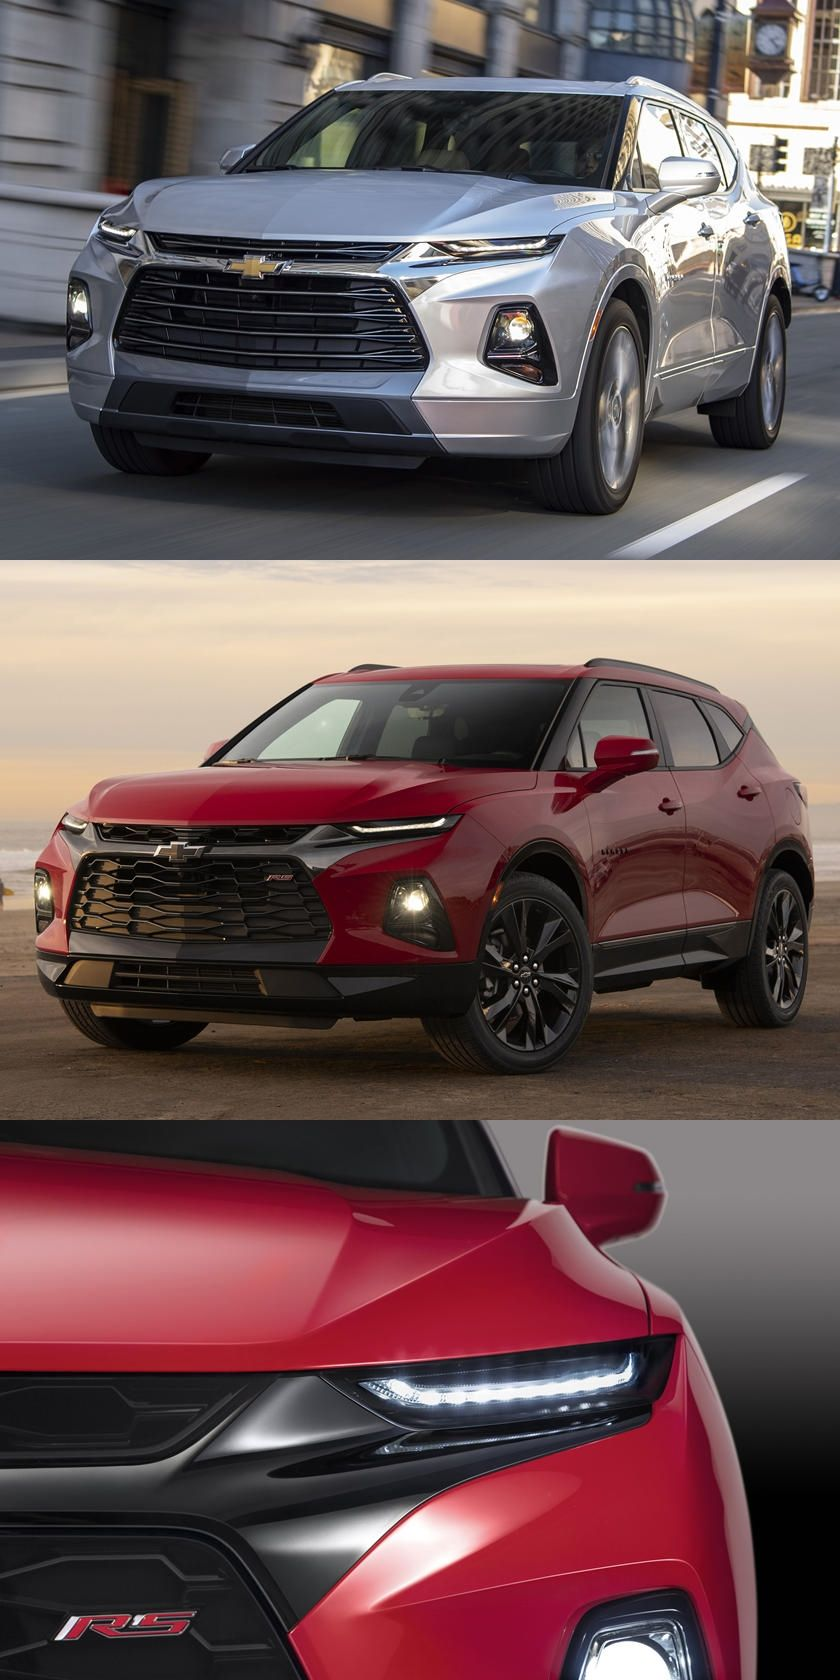 Small Change Has Big Impact On 2020 Chevy Blazer The Turbo Four Isn T The Only Addition To Chevy S New Midsize Cr Chevy Chevrolet Blazer Chevrolet Trailblazer